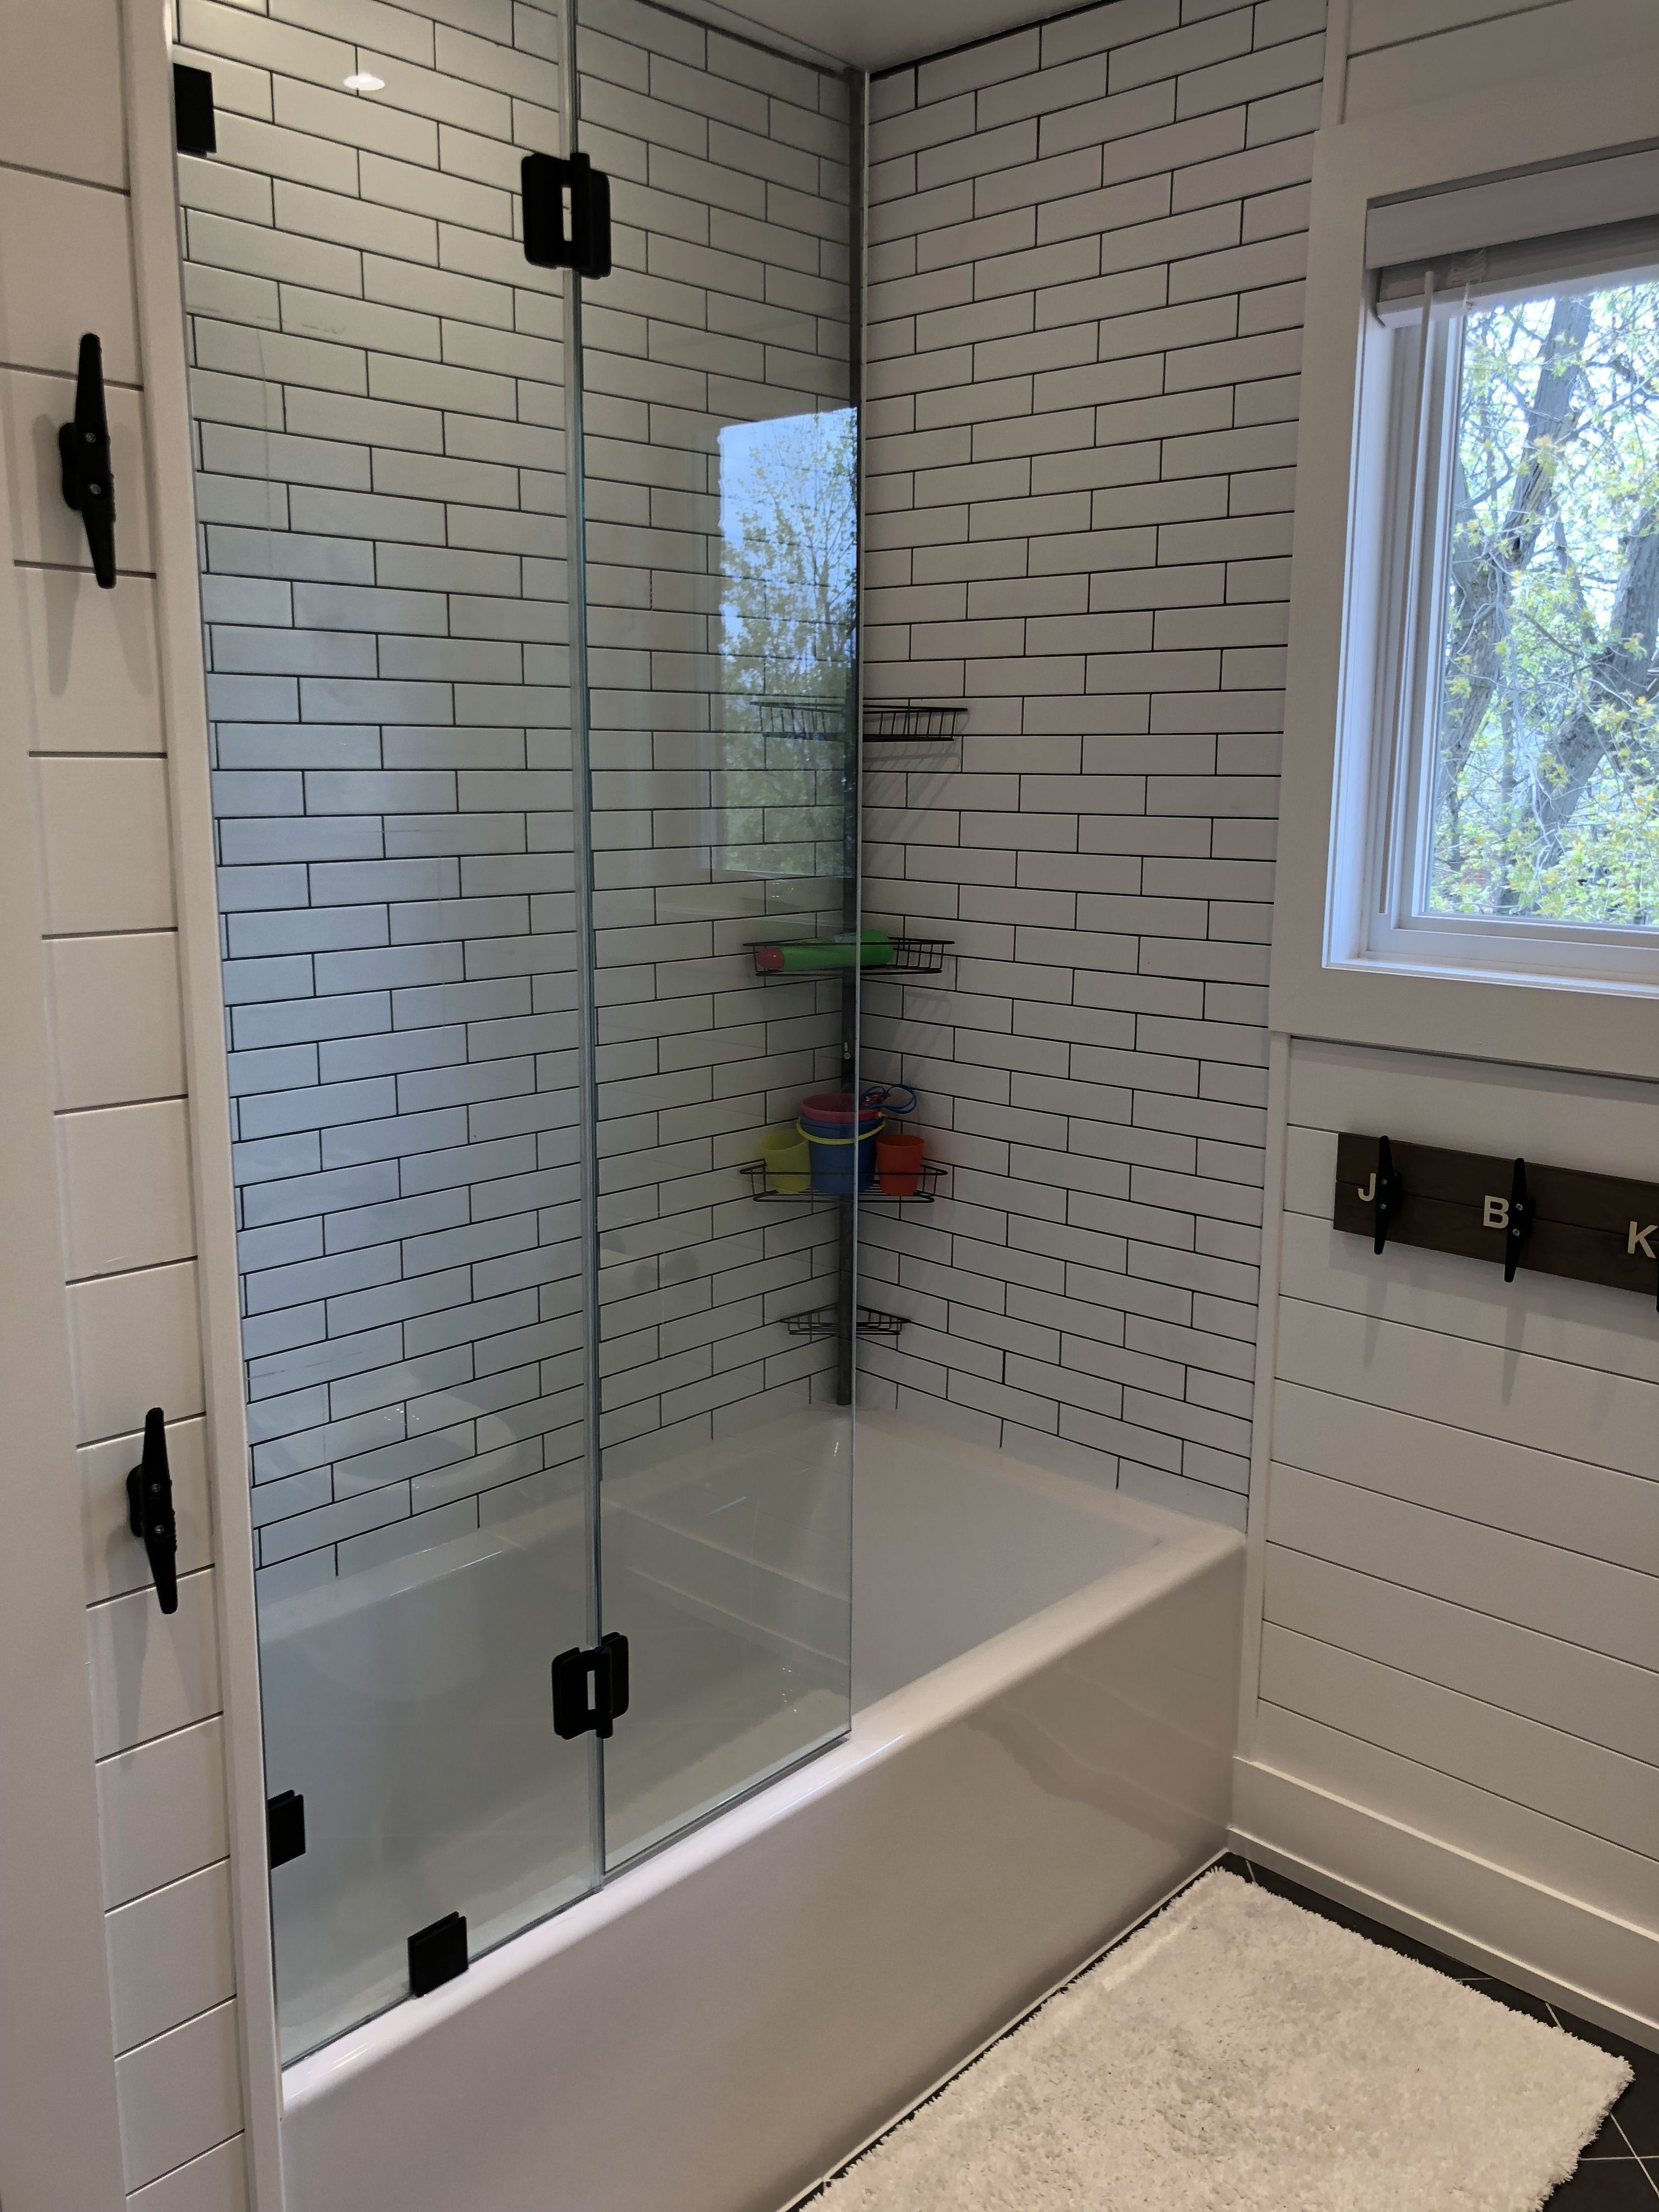 Fascinating Farmhouse Master Bathroom Remodel Ideas To Have Now47